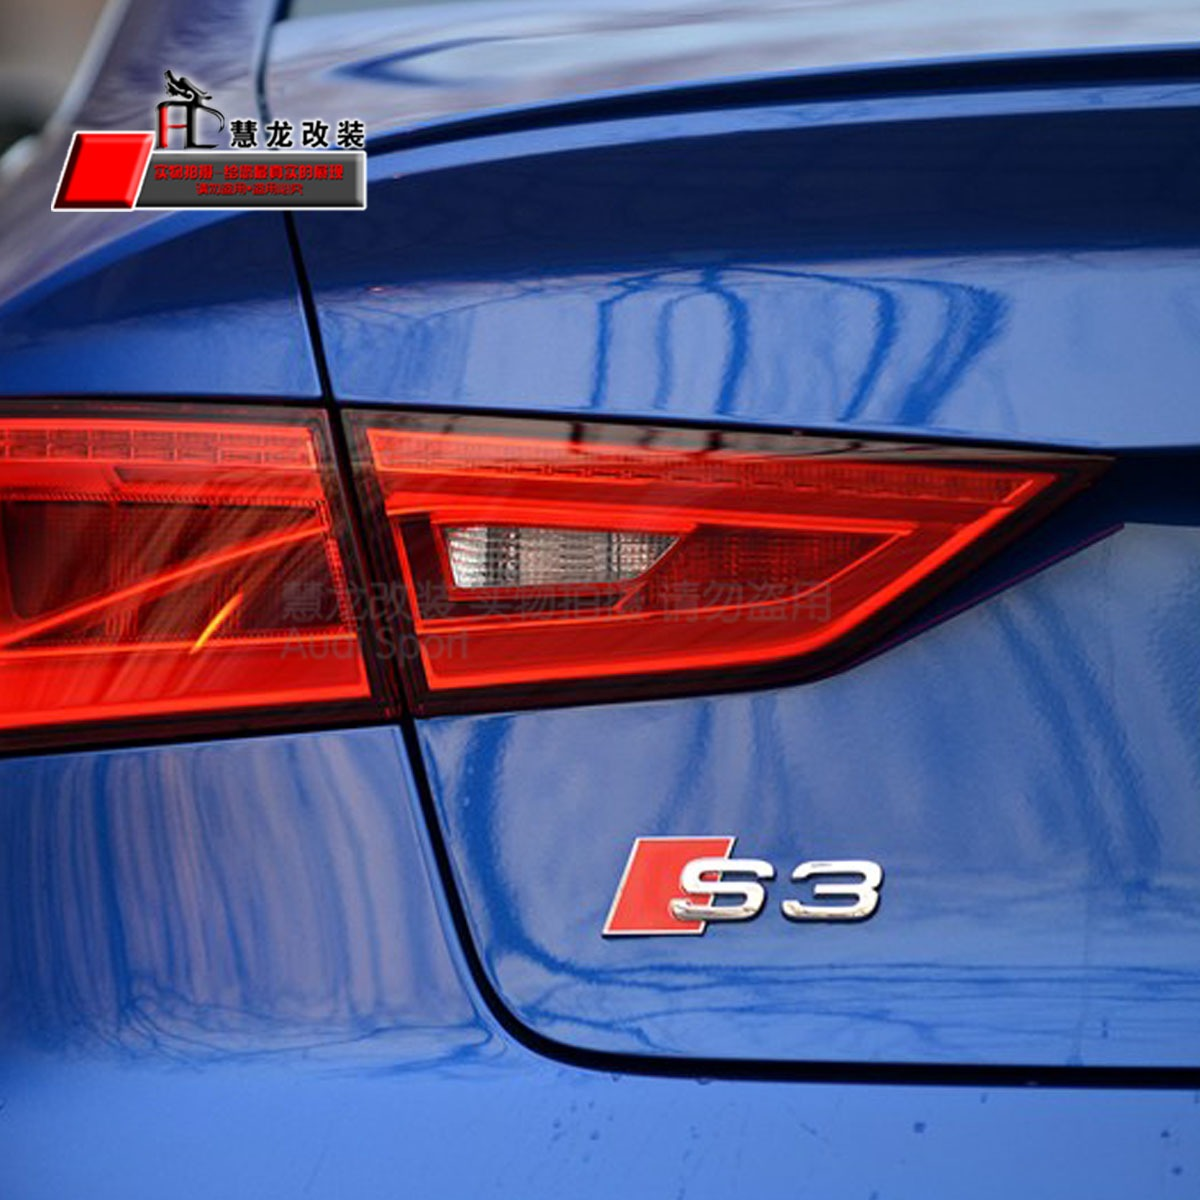 Buy German Original Audi S3 S3 Modified After The Standard A3 Audi S3 S3 New Car Standard Word Mark After The Standard Rear In Cheap Price On Alibaba Com